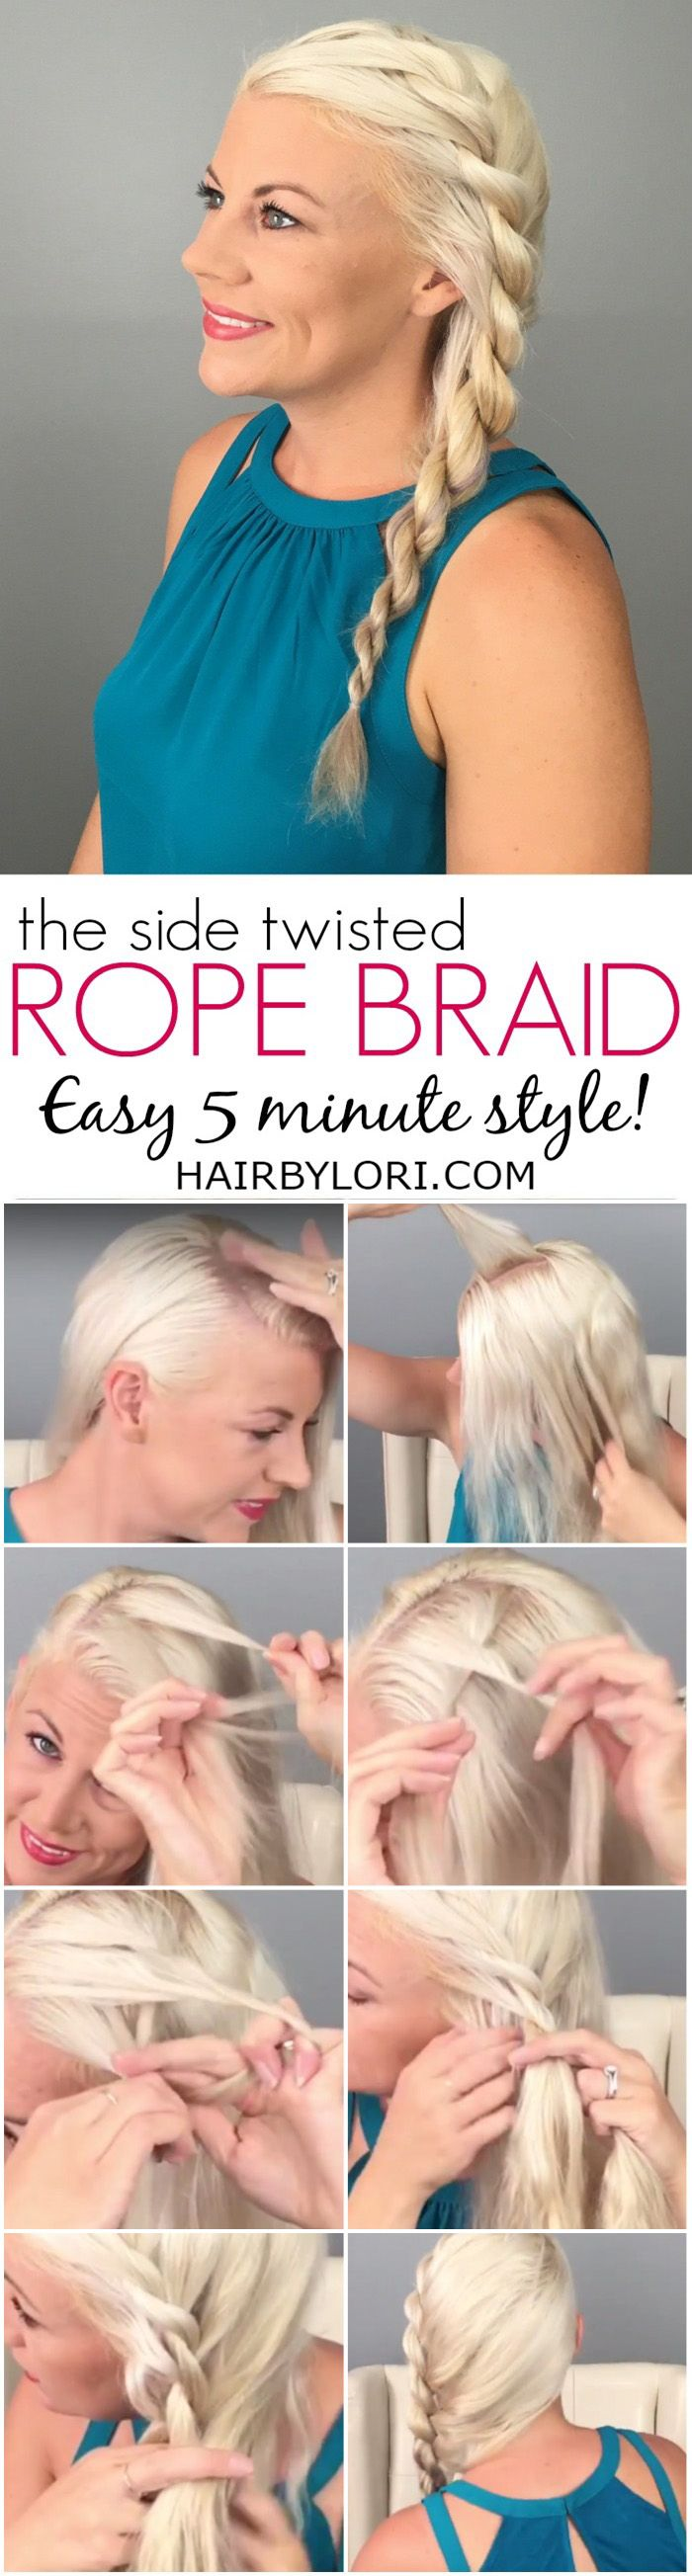 Side Rope Braid Tutorial is Easy & Quick for a simple day or night style.